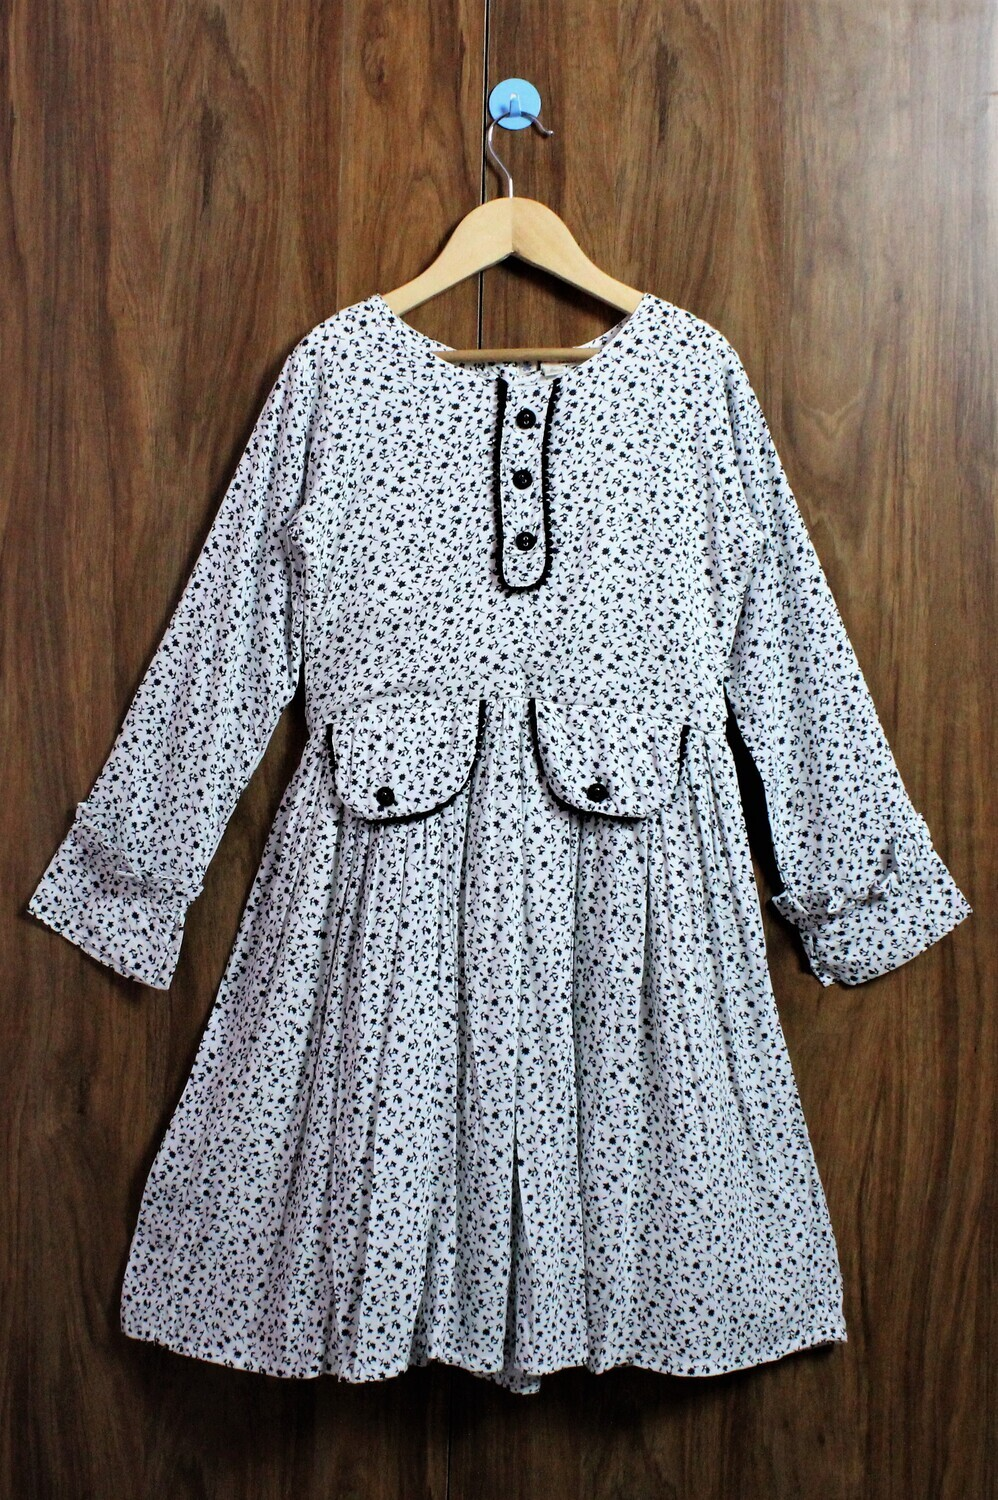 Full sleeve comfort frocks(6 to 14 Yrs.)